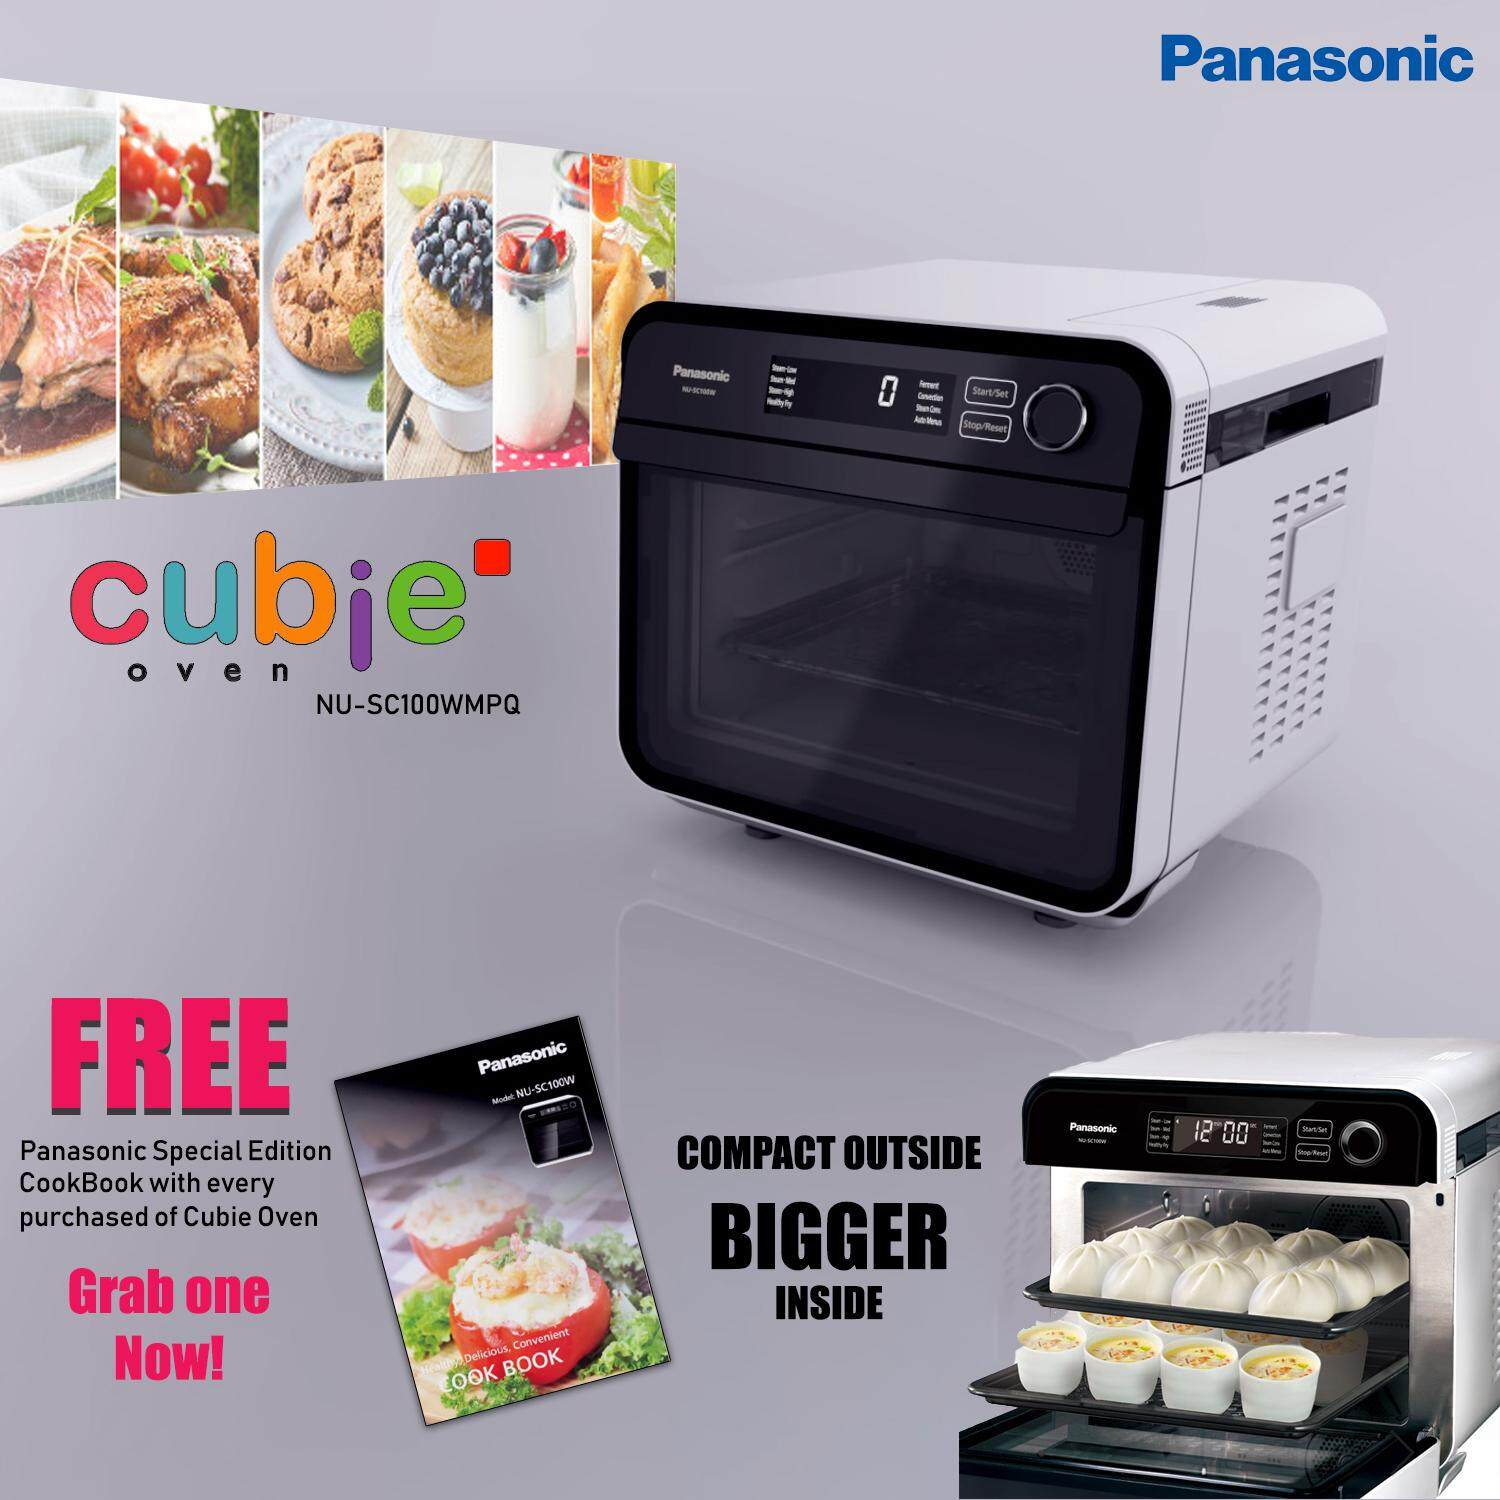 Panasonic Cubie Steam Convection Oven NU-SC100W (White) [FREE Limited Edition Panasonic Cooking Book]